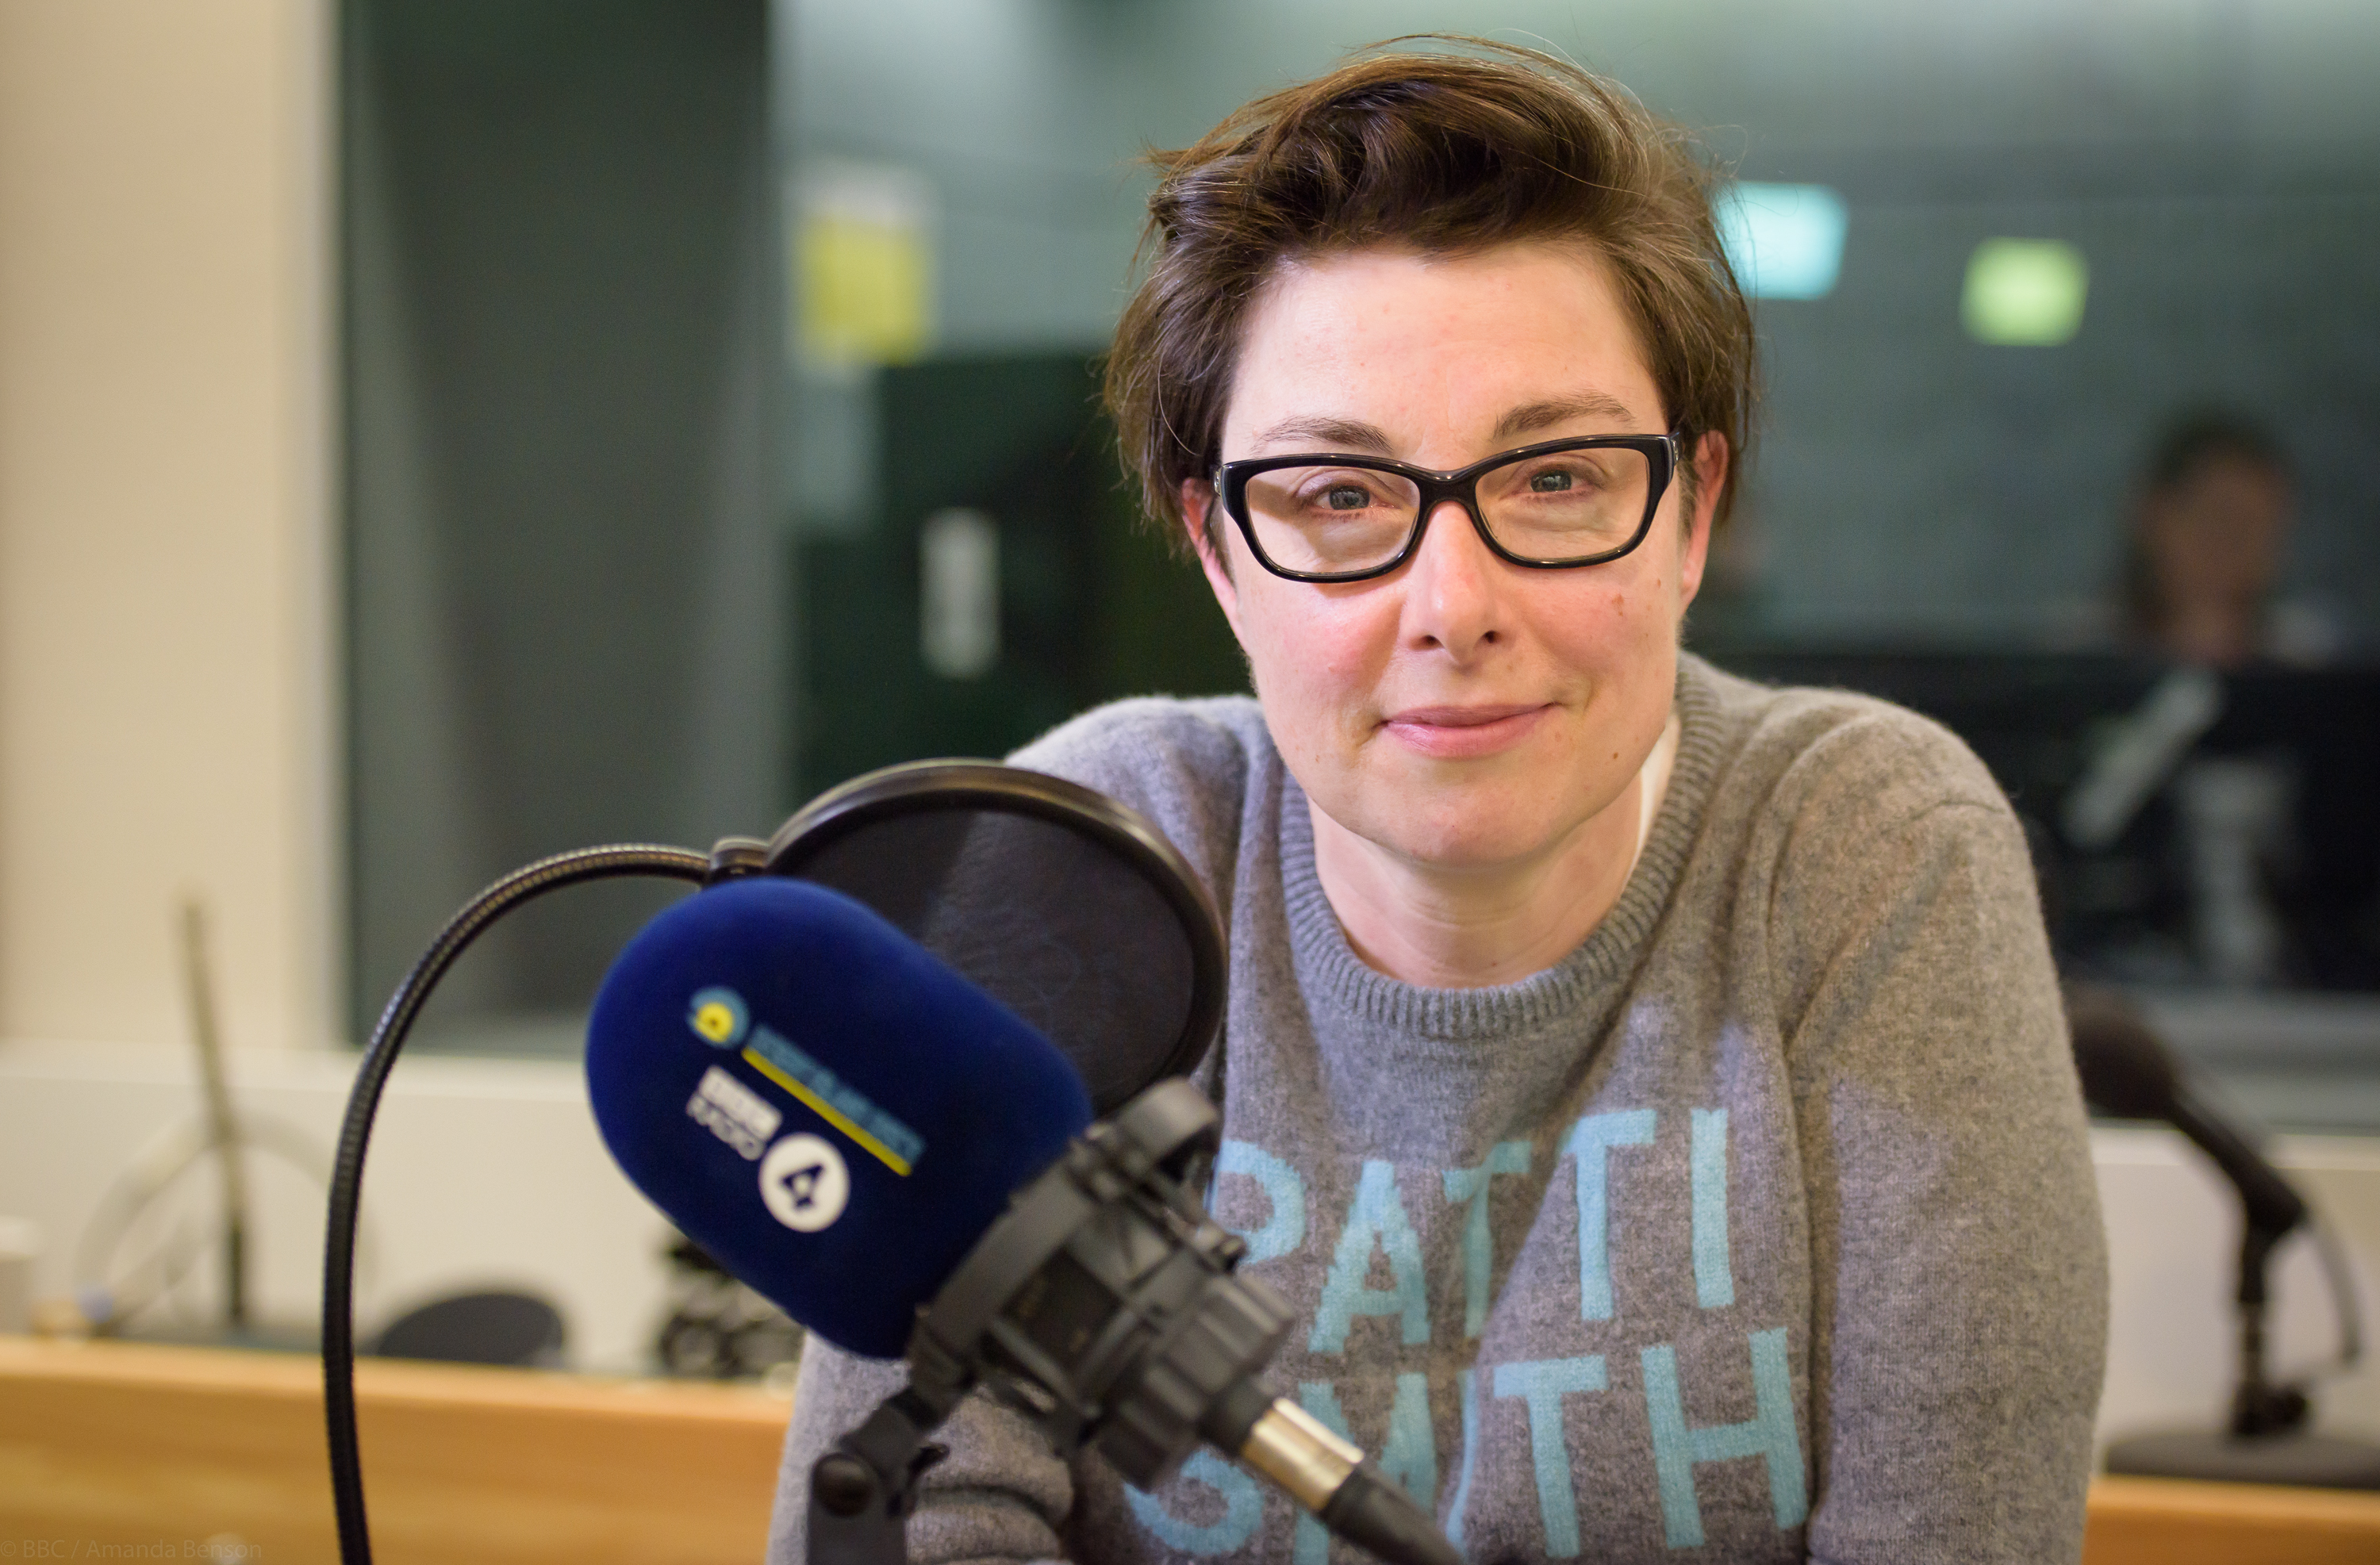 Pictures Sue Perkins naked (56 images), Feet